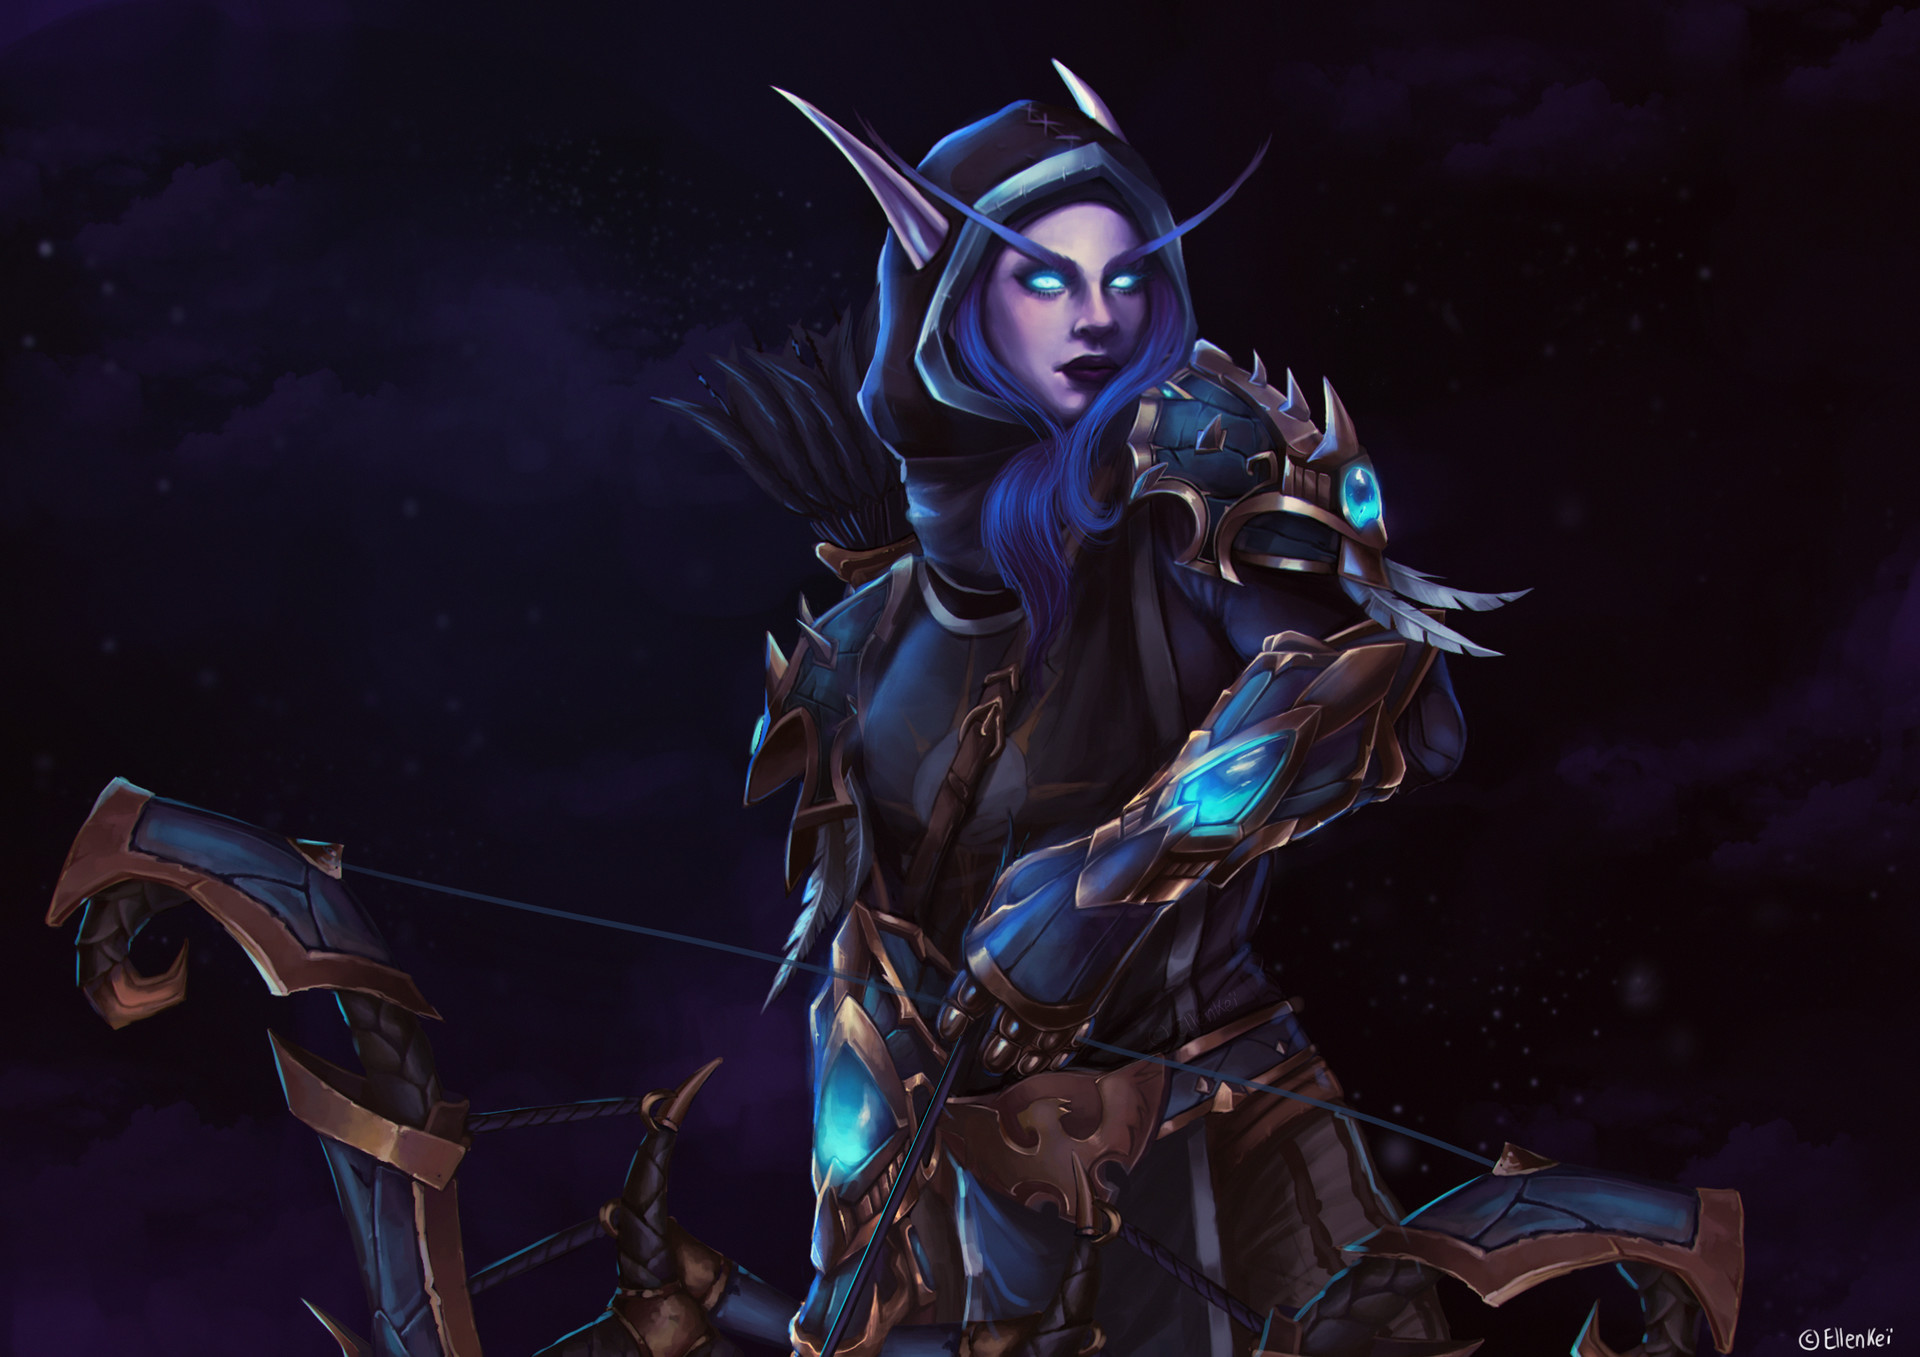 177 Best Void Elf Images On Pholder Wow Transmogrification And Imaginary Azeroth First up are blood elves and dwarves. 177 best void elf images on pholder